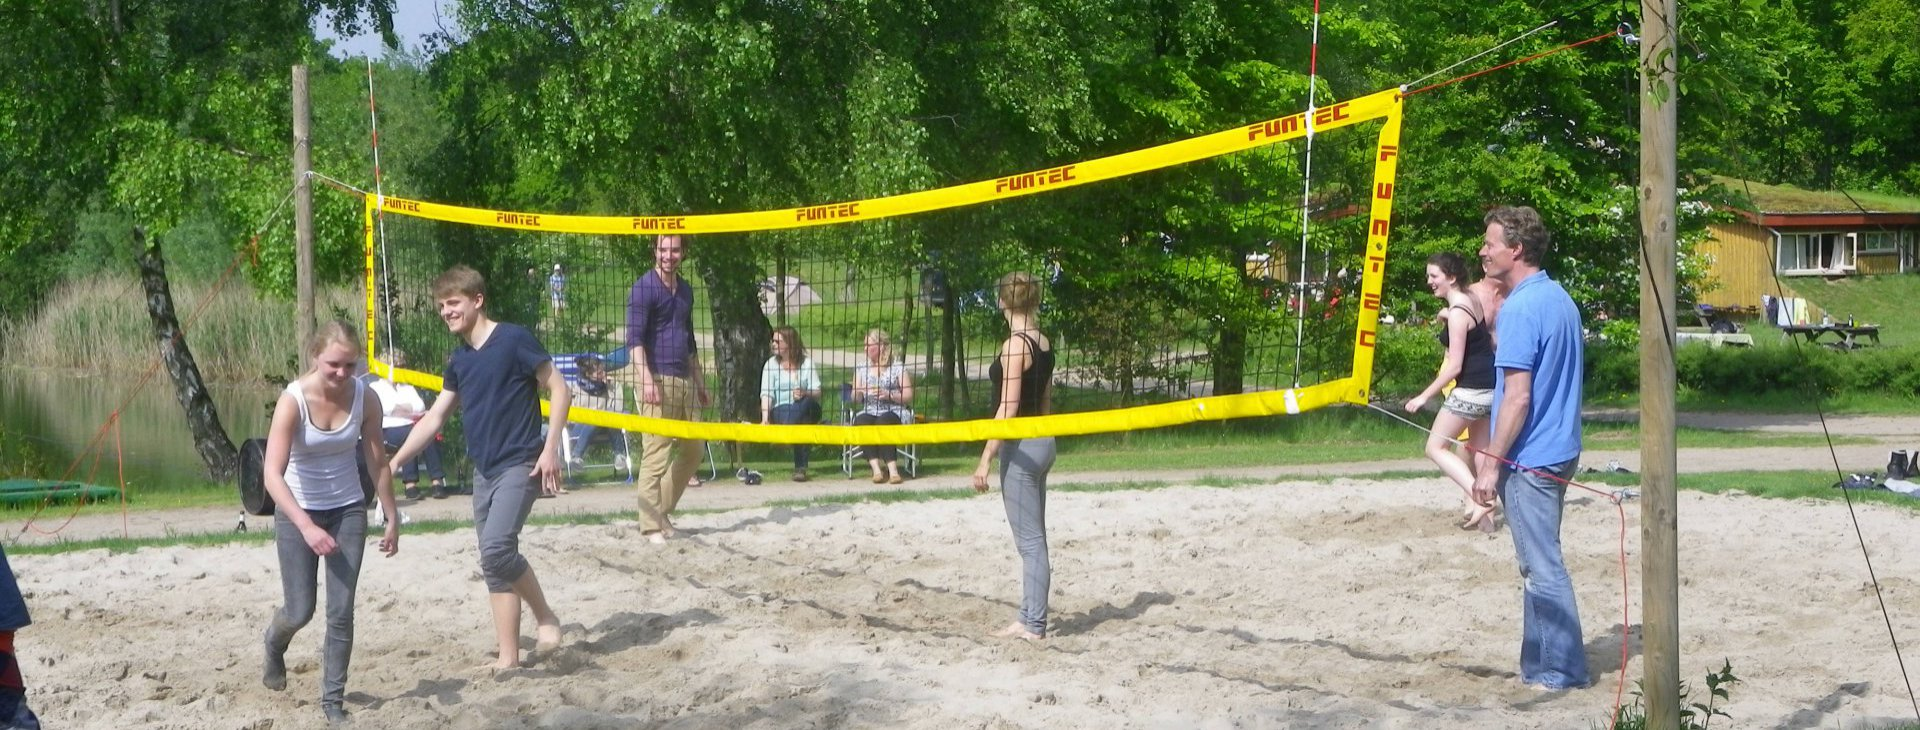 Beachvolleybal familie